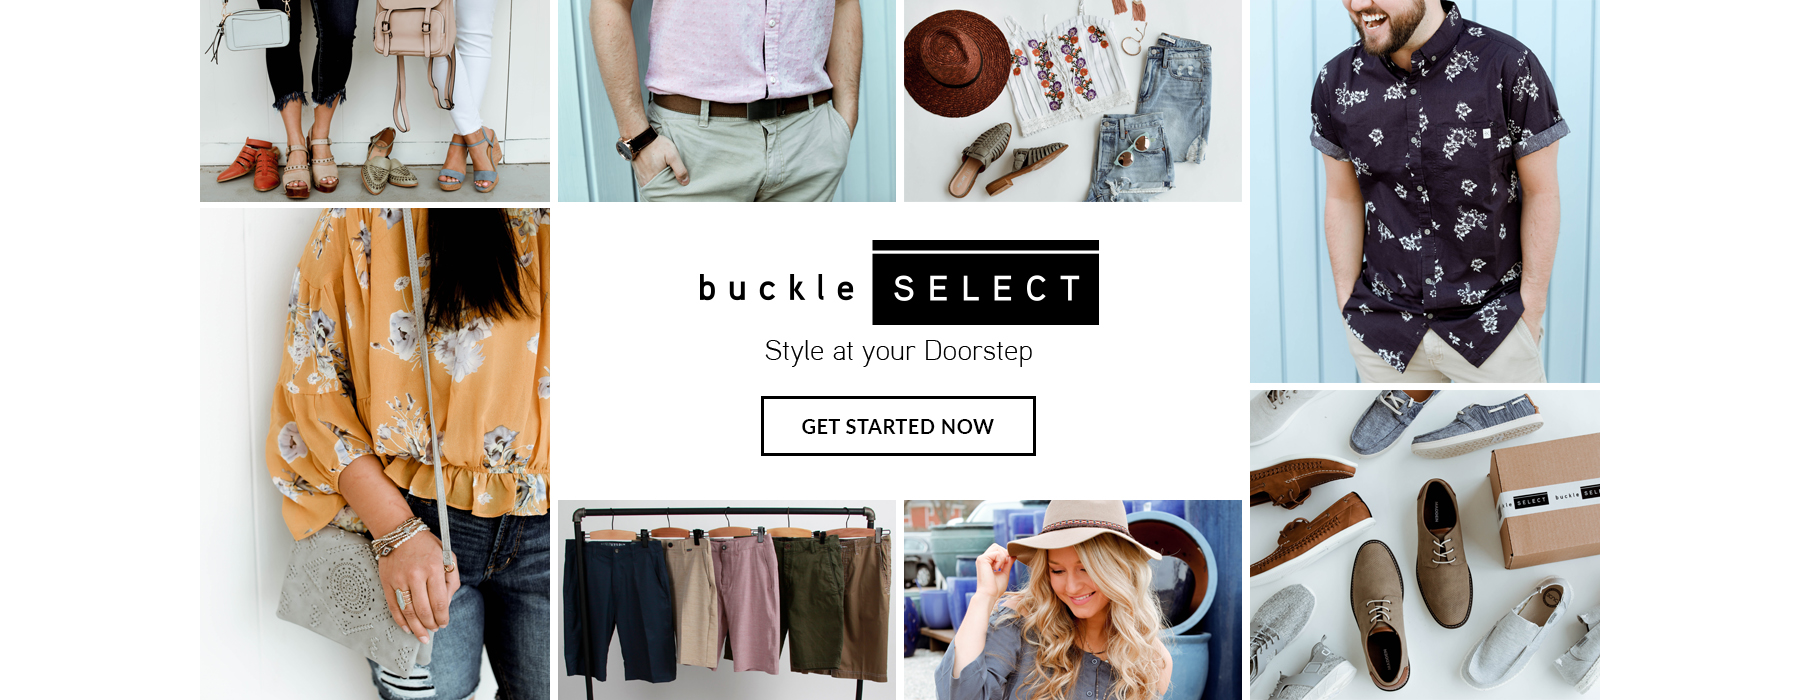 Collage of pictures showing different outfits and products that will come in your buckle SELECT order, delivered to your doorstep.